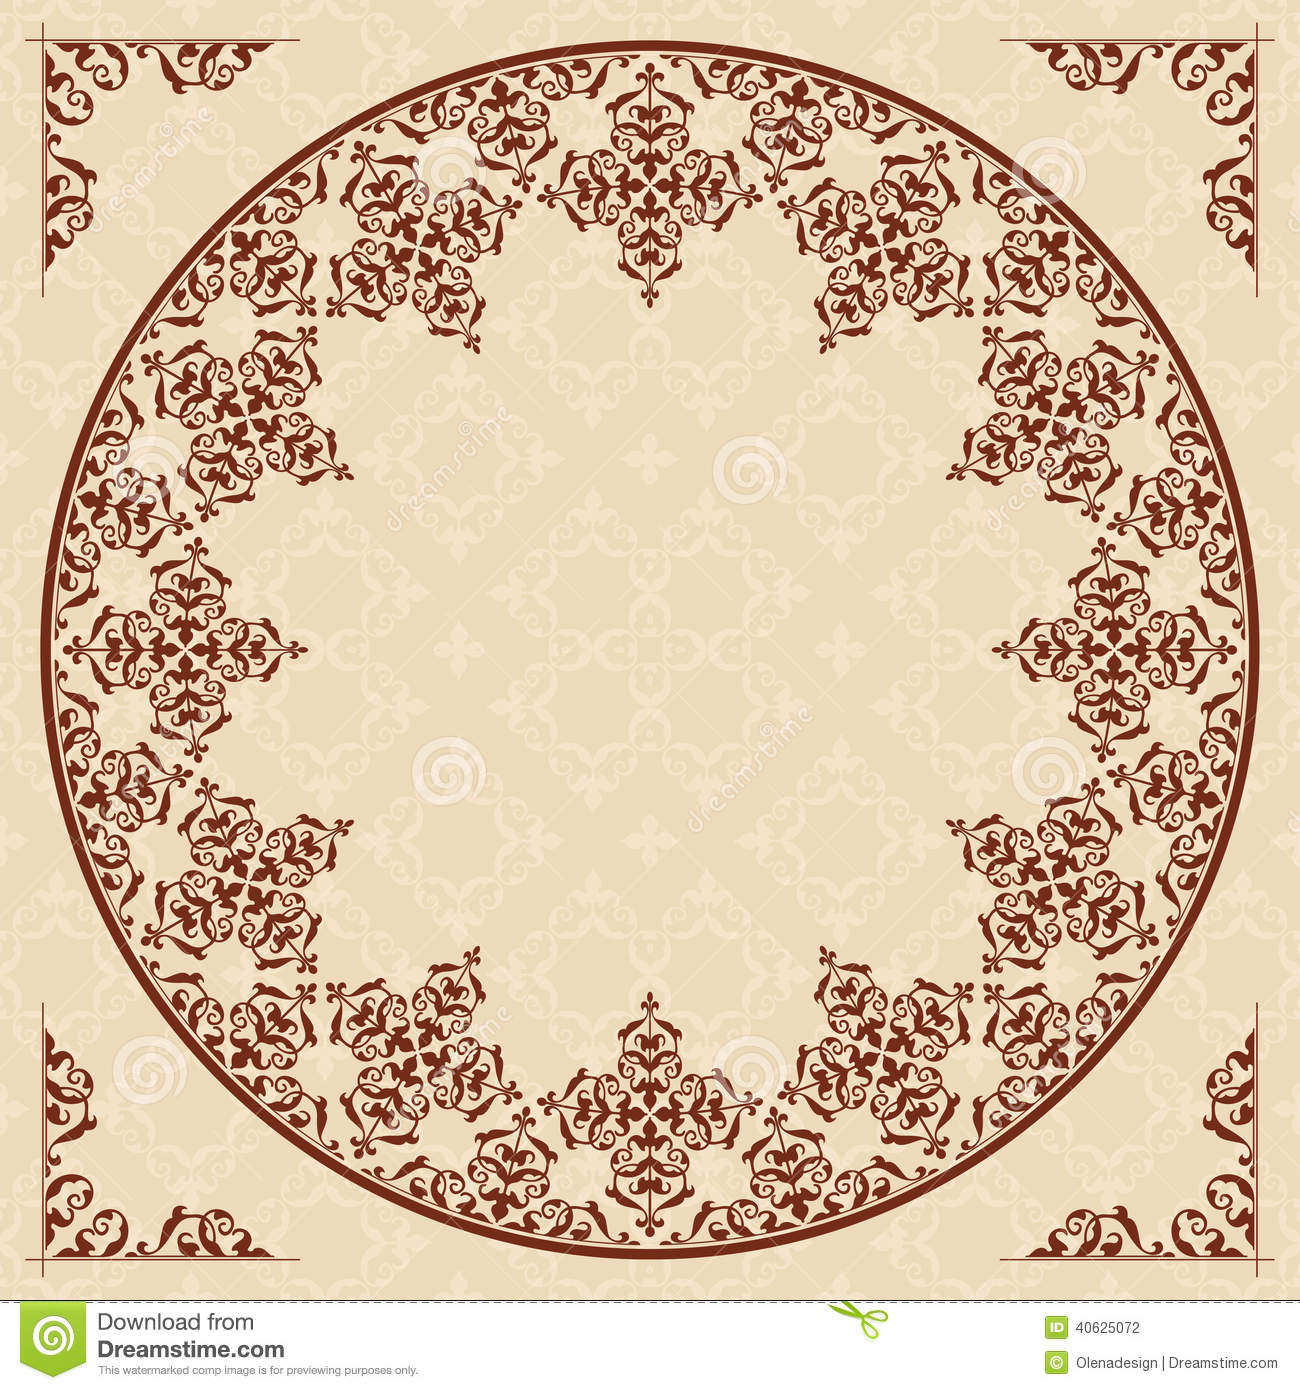 Stock Photography Round Arabic Ornament Light Beige Pattern Vector Eps Image40625072 on Victorian Ornamental Border Brown